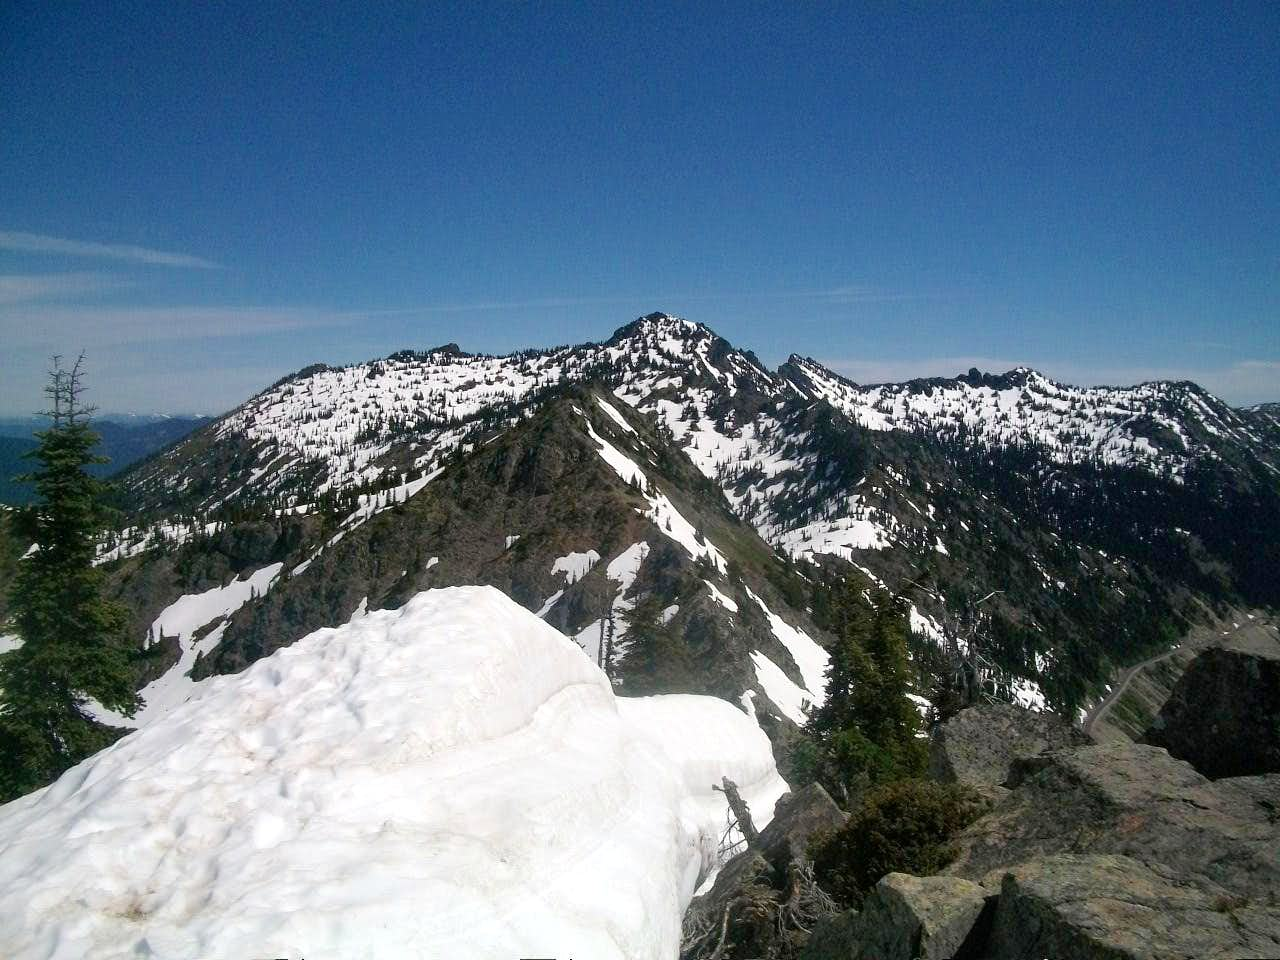 Deadwood Peak